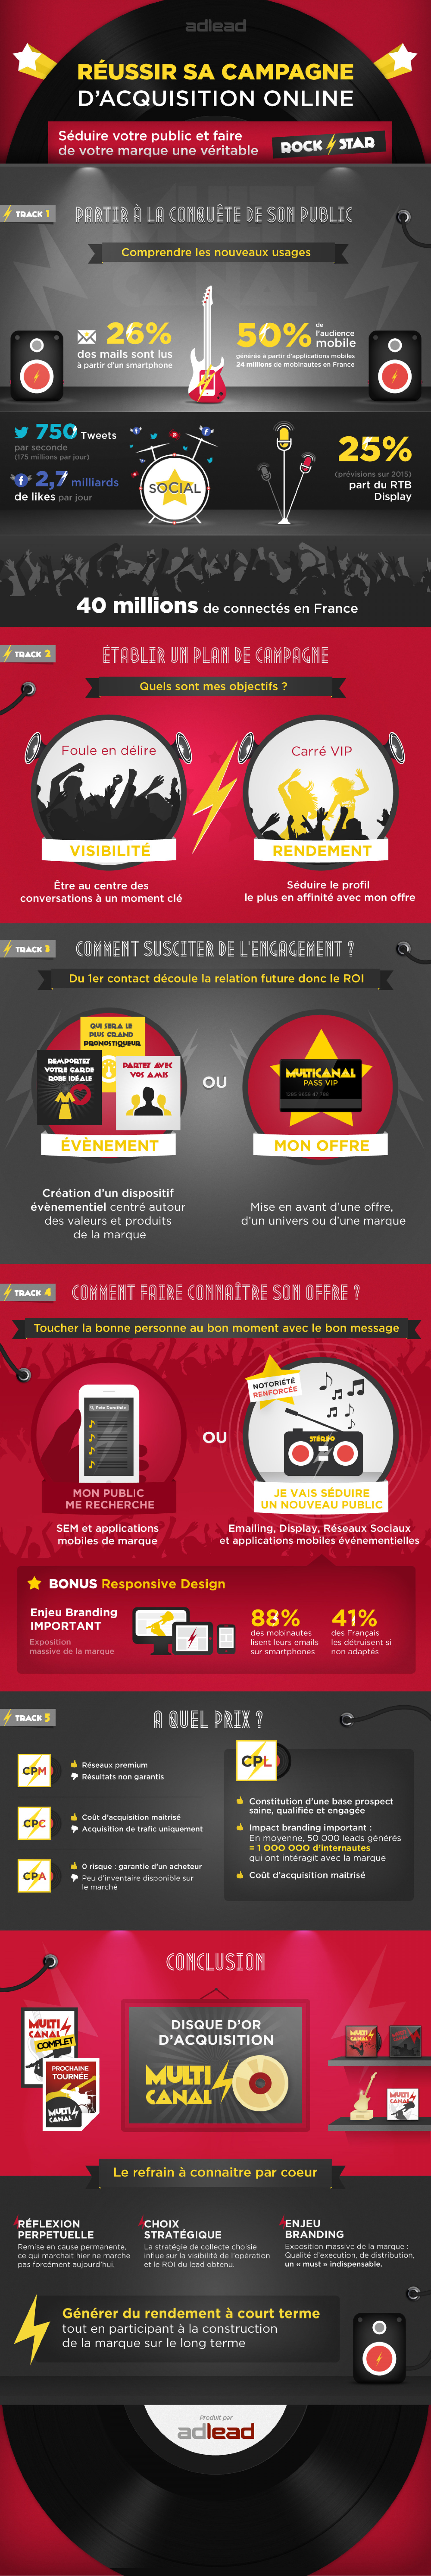 Rock Star Branding (french) Infographic